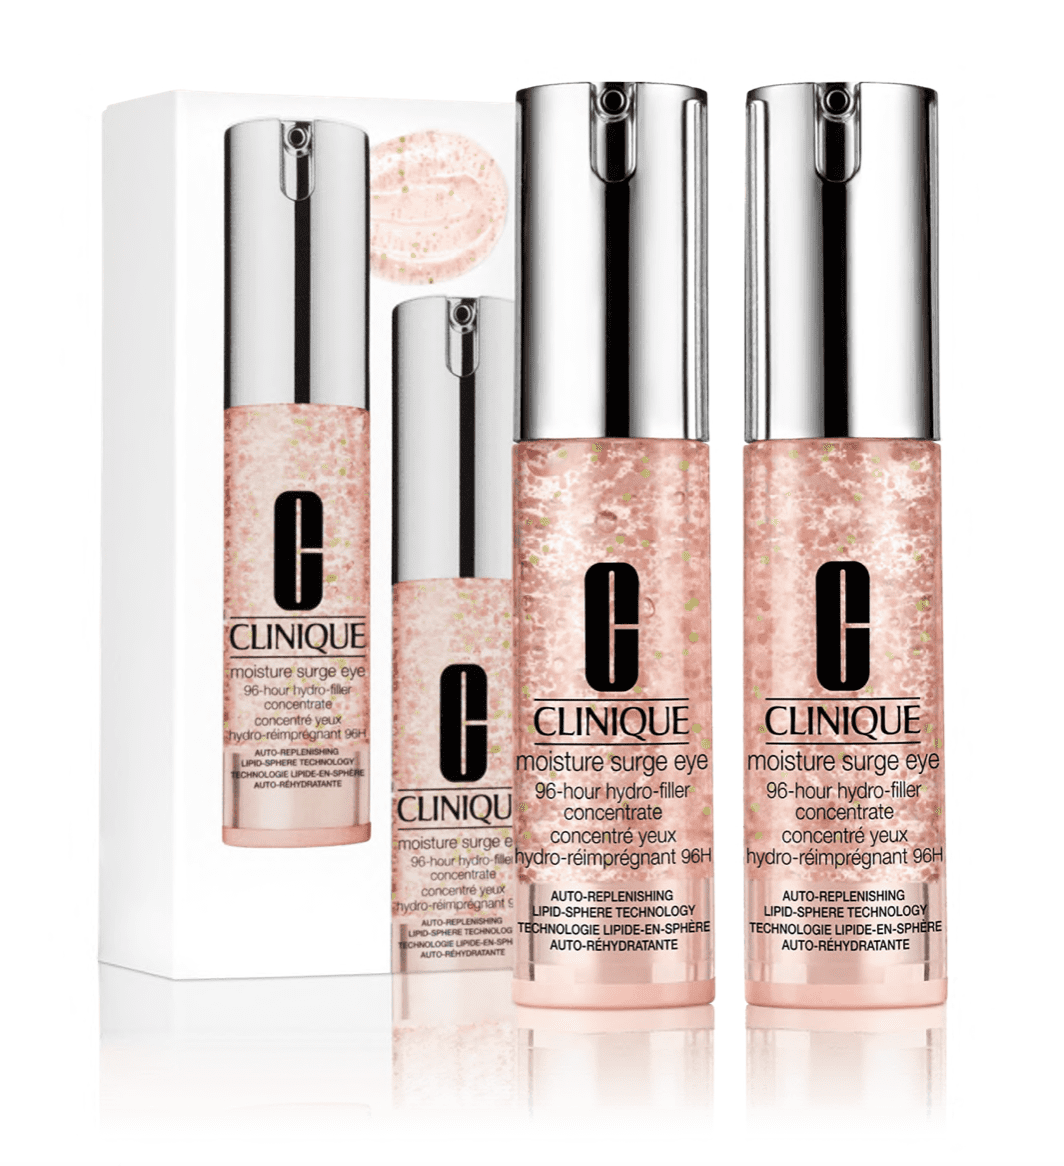 Clinique: 2-count Moisture Surge Eye Concentrate for